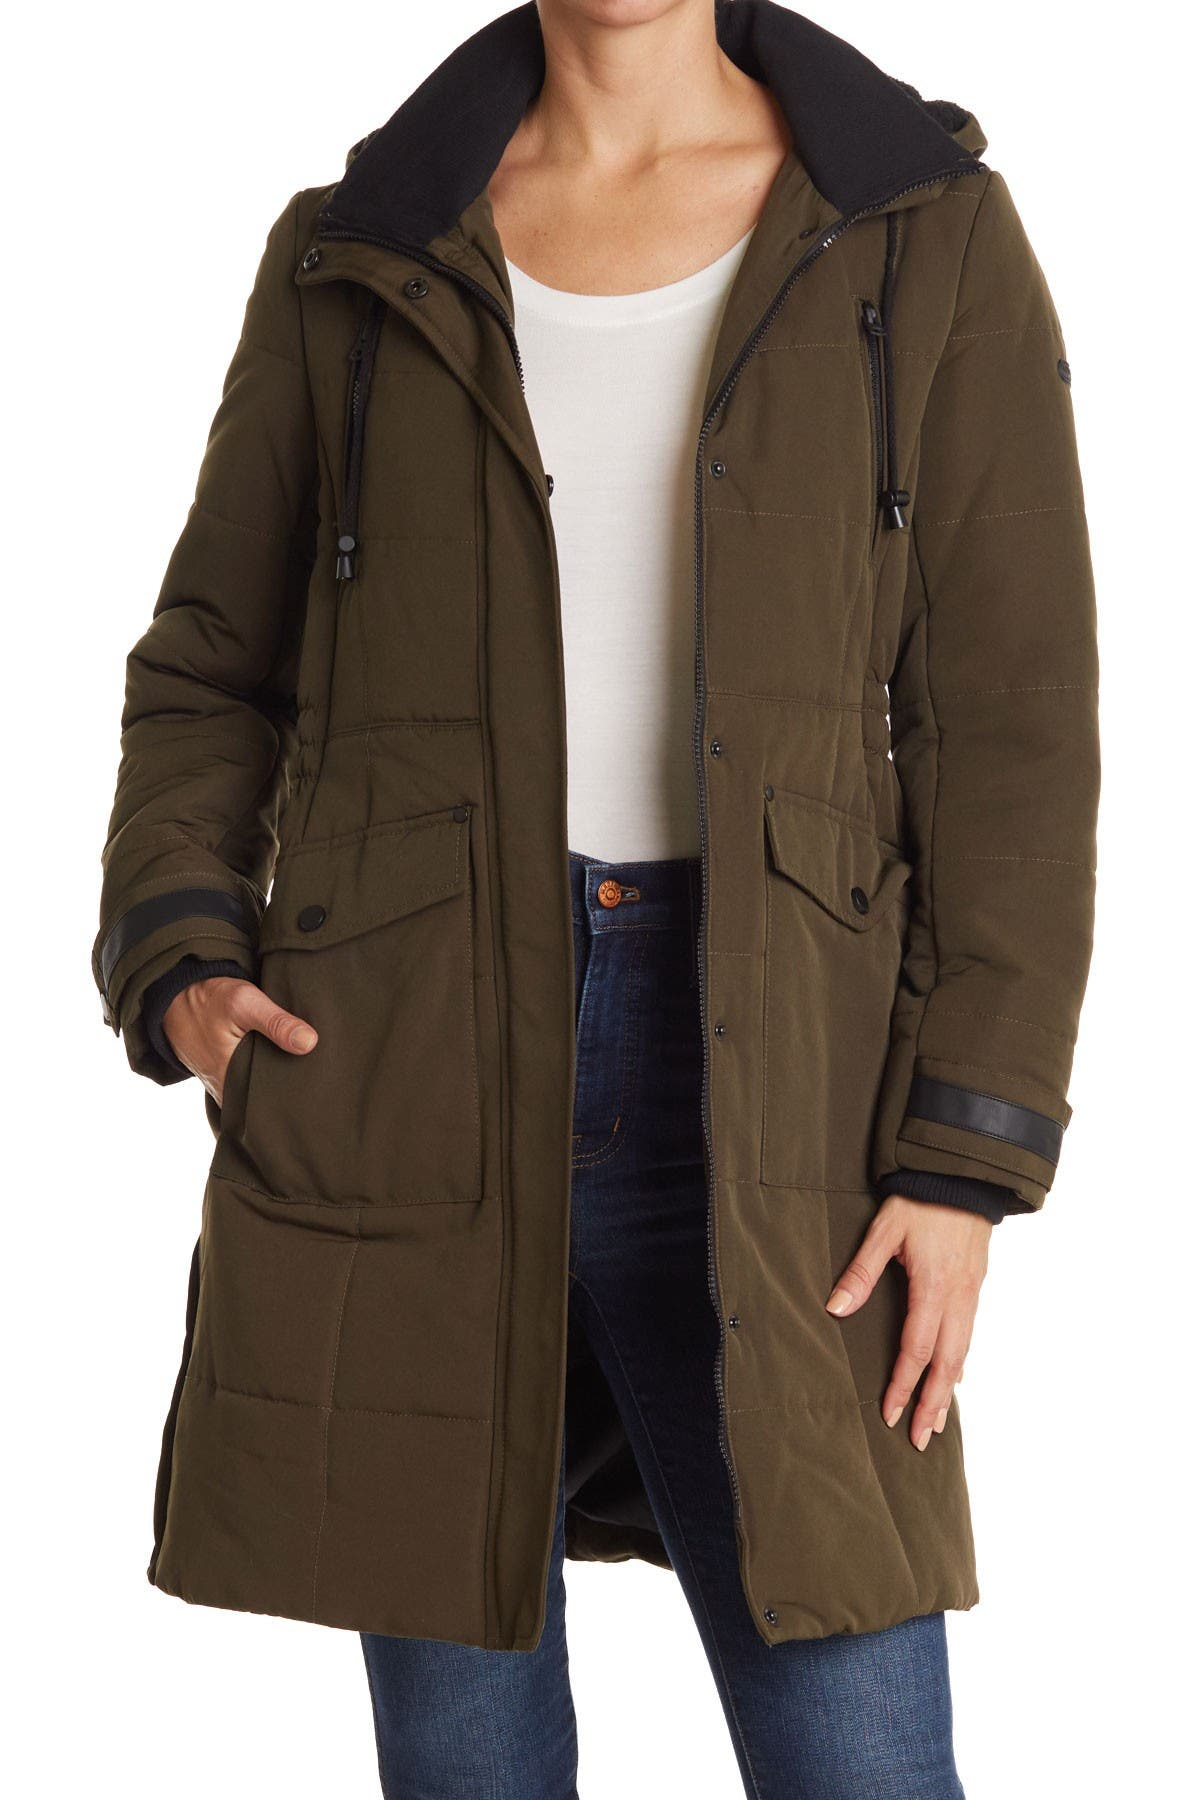 Image of Lucky Brand Quilted Hooded Long Parka Jacket